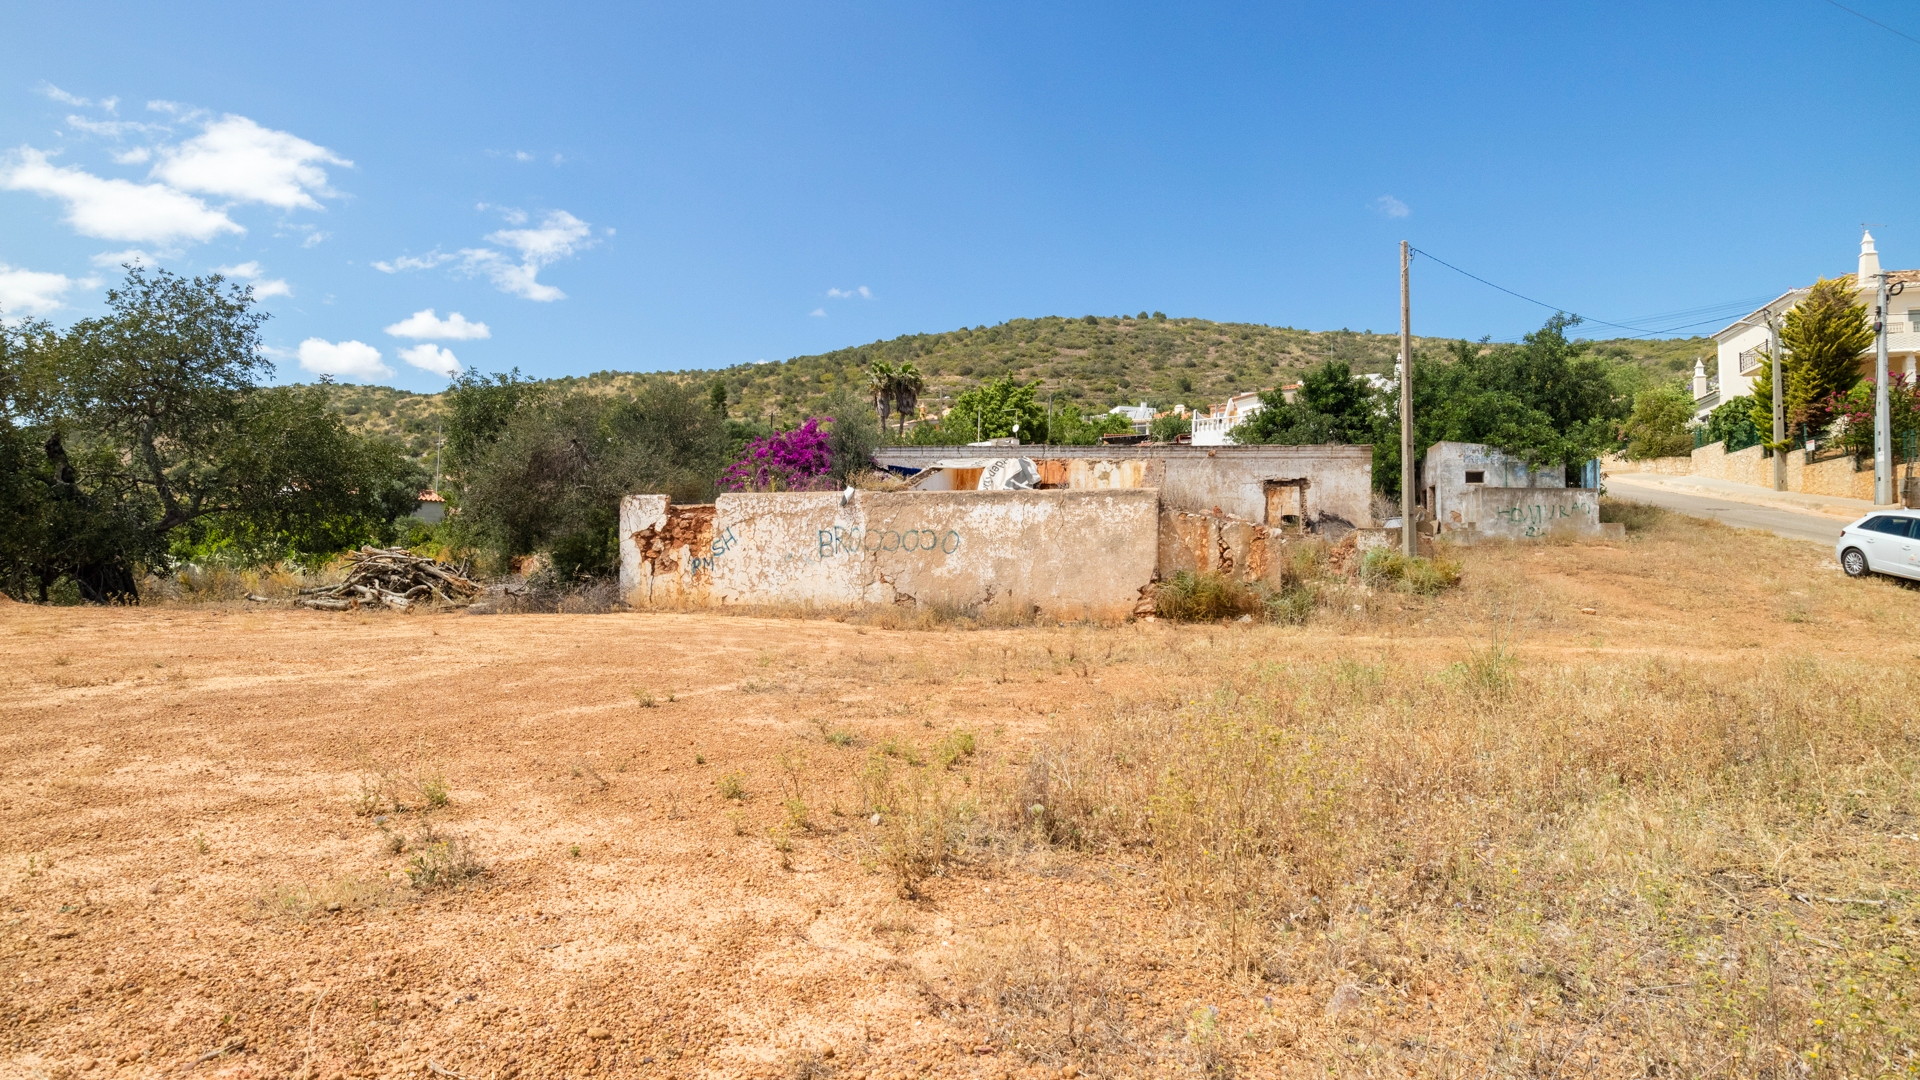 Plot with Approved Project for 5 Villas + Pools with Sea Views near Almancil | VM1474 This plot with ruin has permission and plans for 3 linked town houses and 2 semi-detached villas each with private pools and sea views. Close to amenities with easy access.